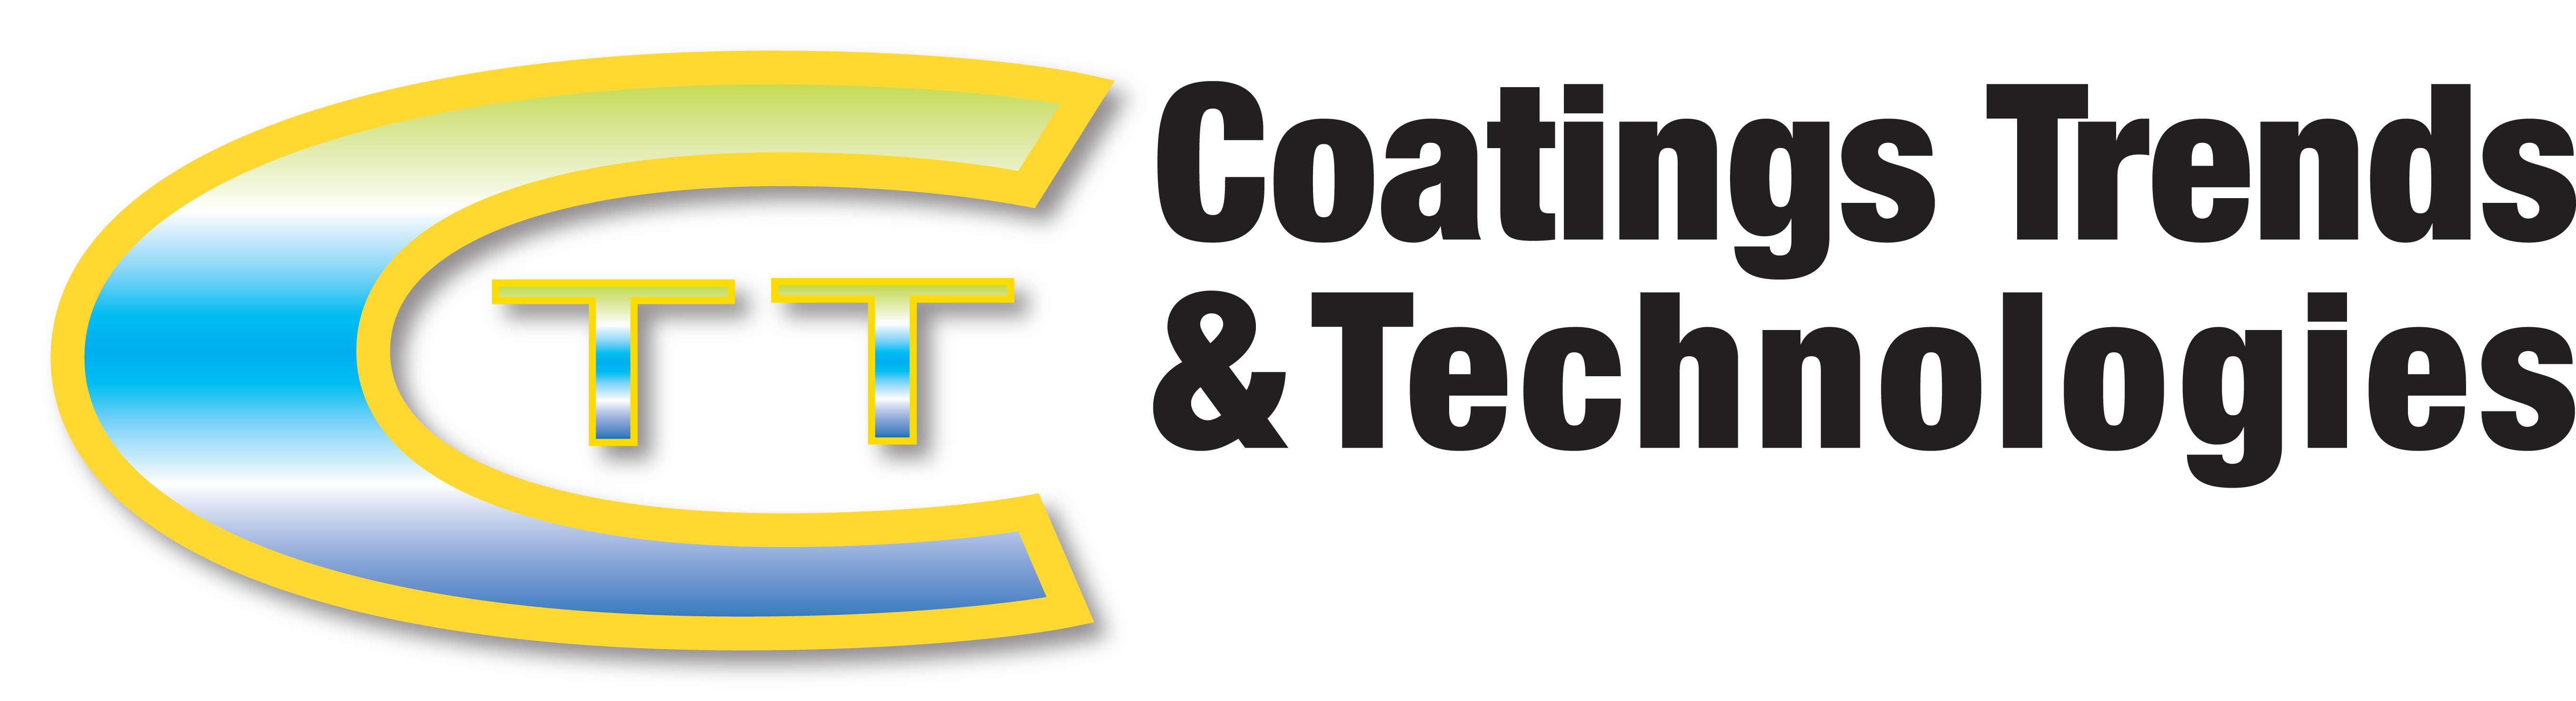 Coatings Trends and Technologies Logo